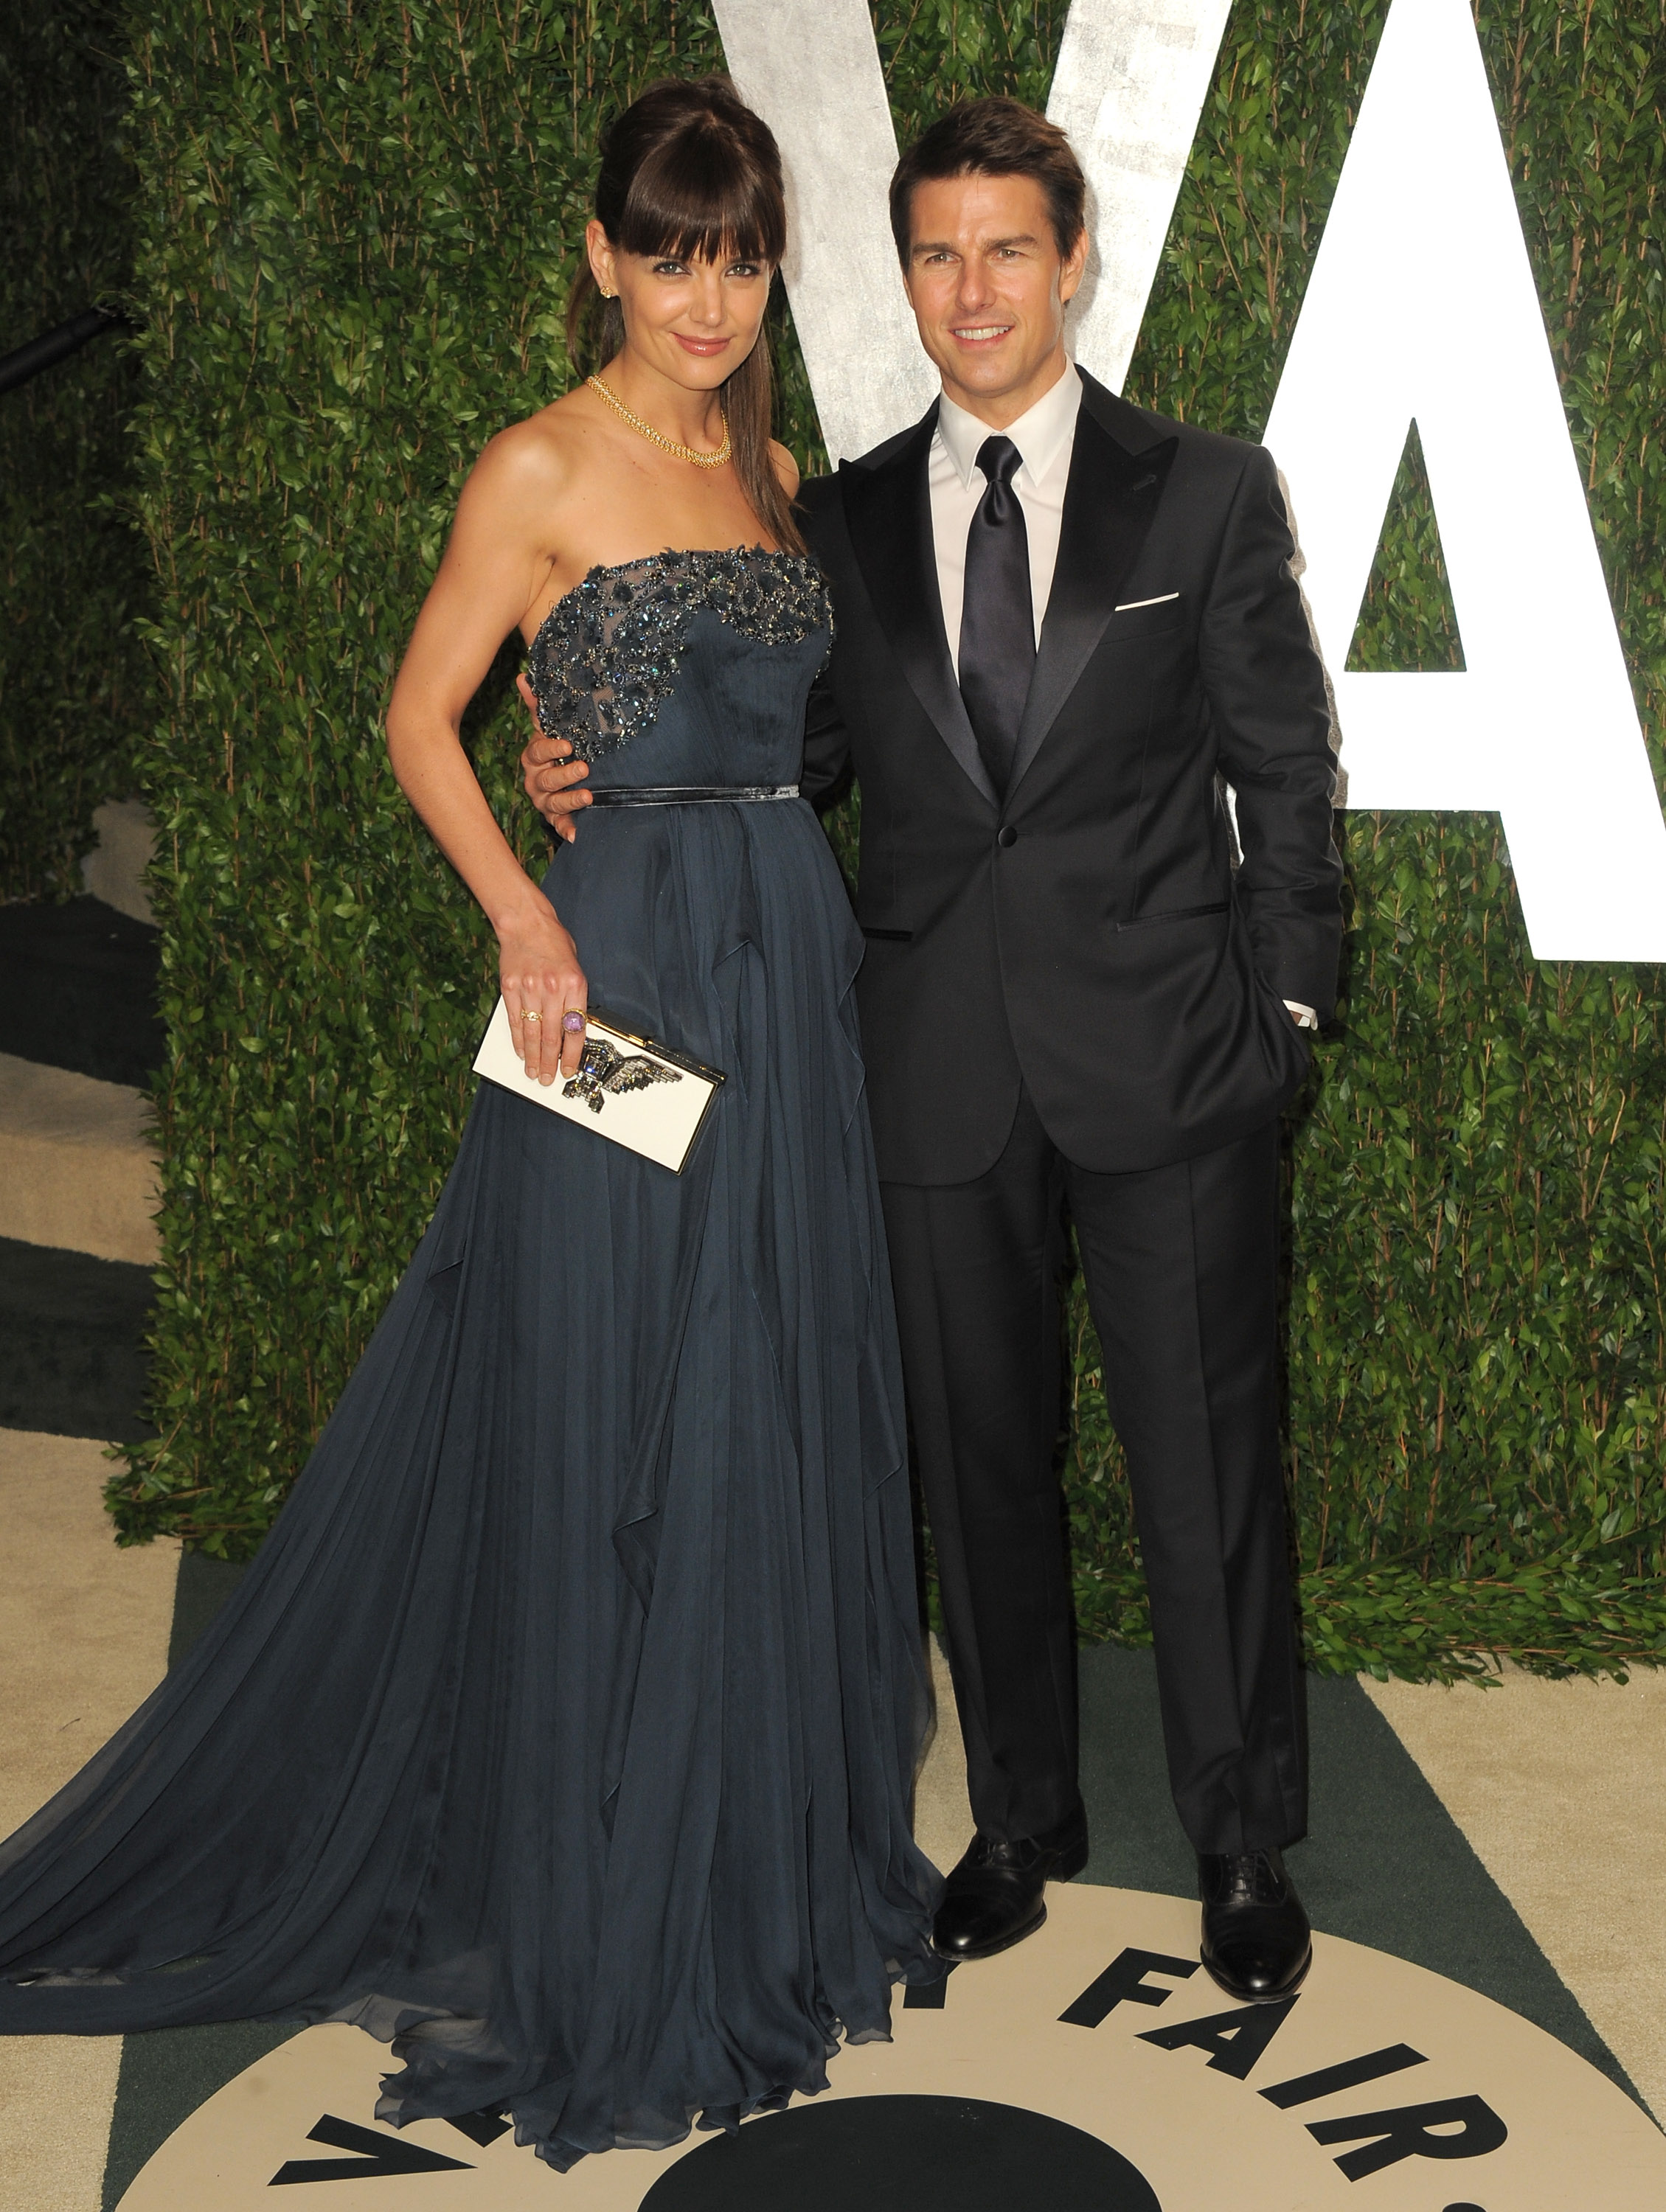 Tom Cruise and Katie Holmes hit the Vanity Fair Oscar party.